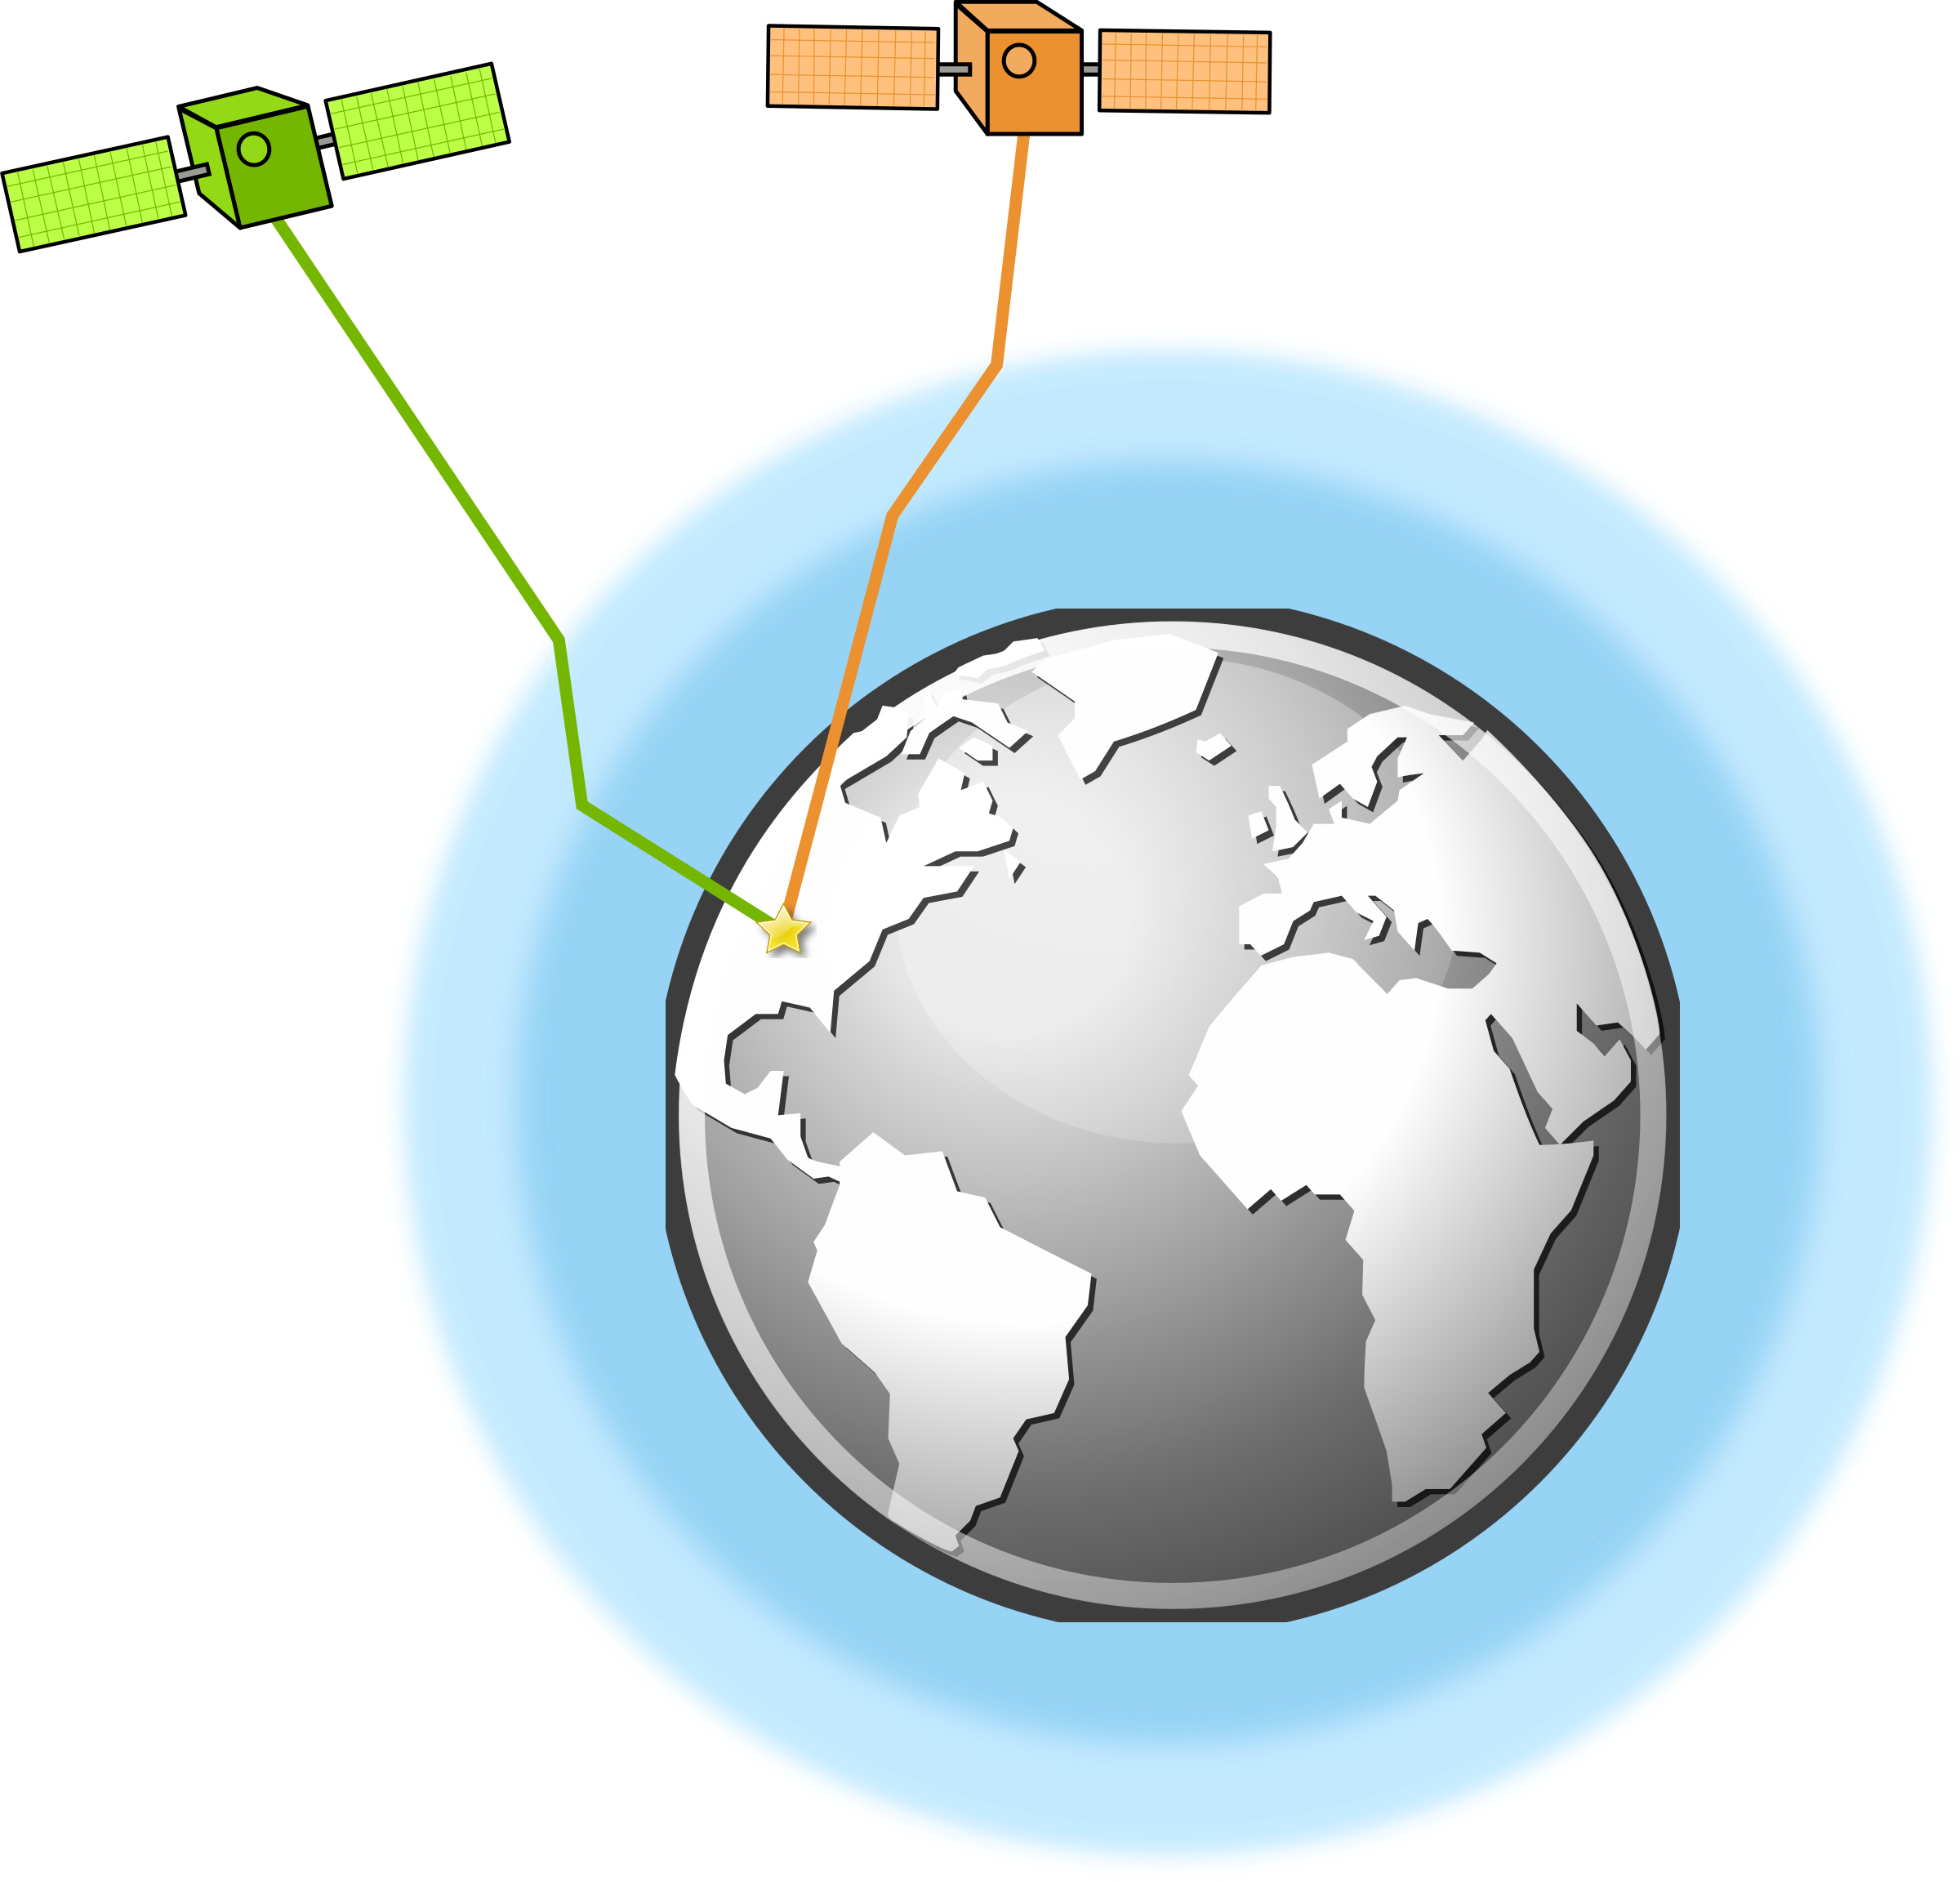 Atmosphere clipart earth Atmospheric Clipart GPS conditions conditions